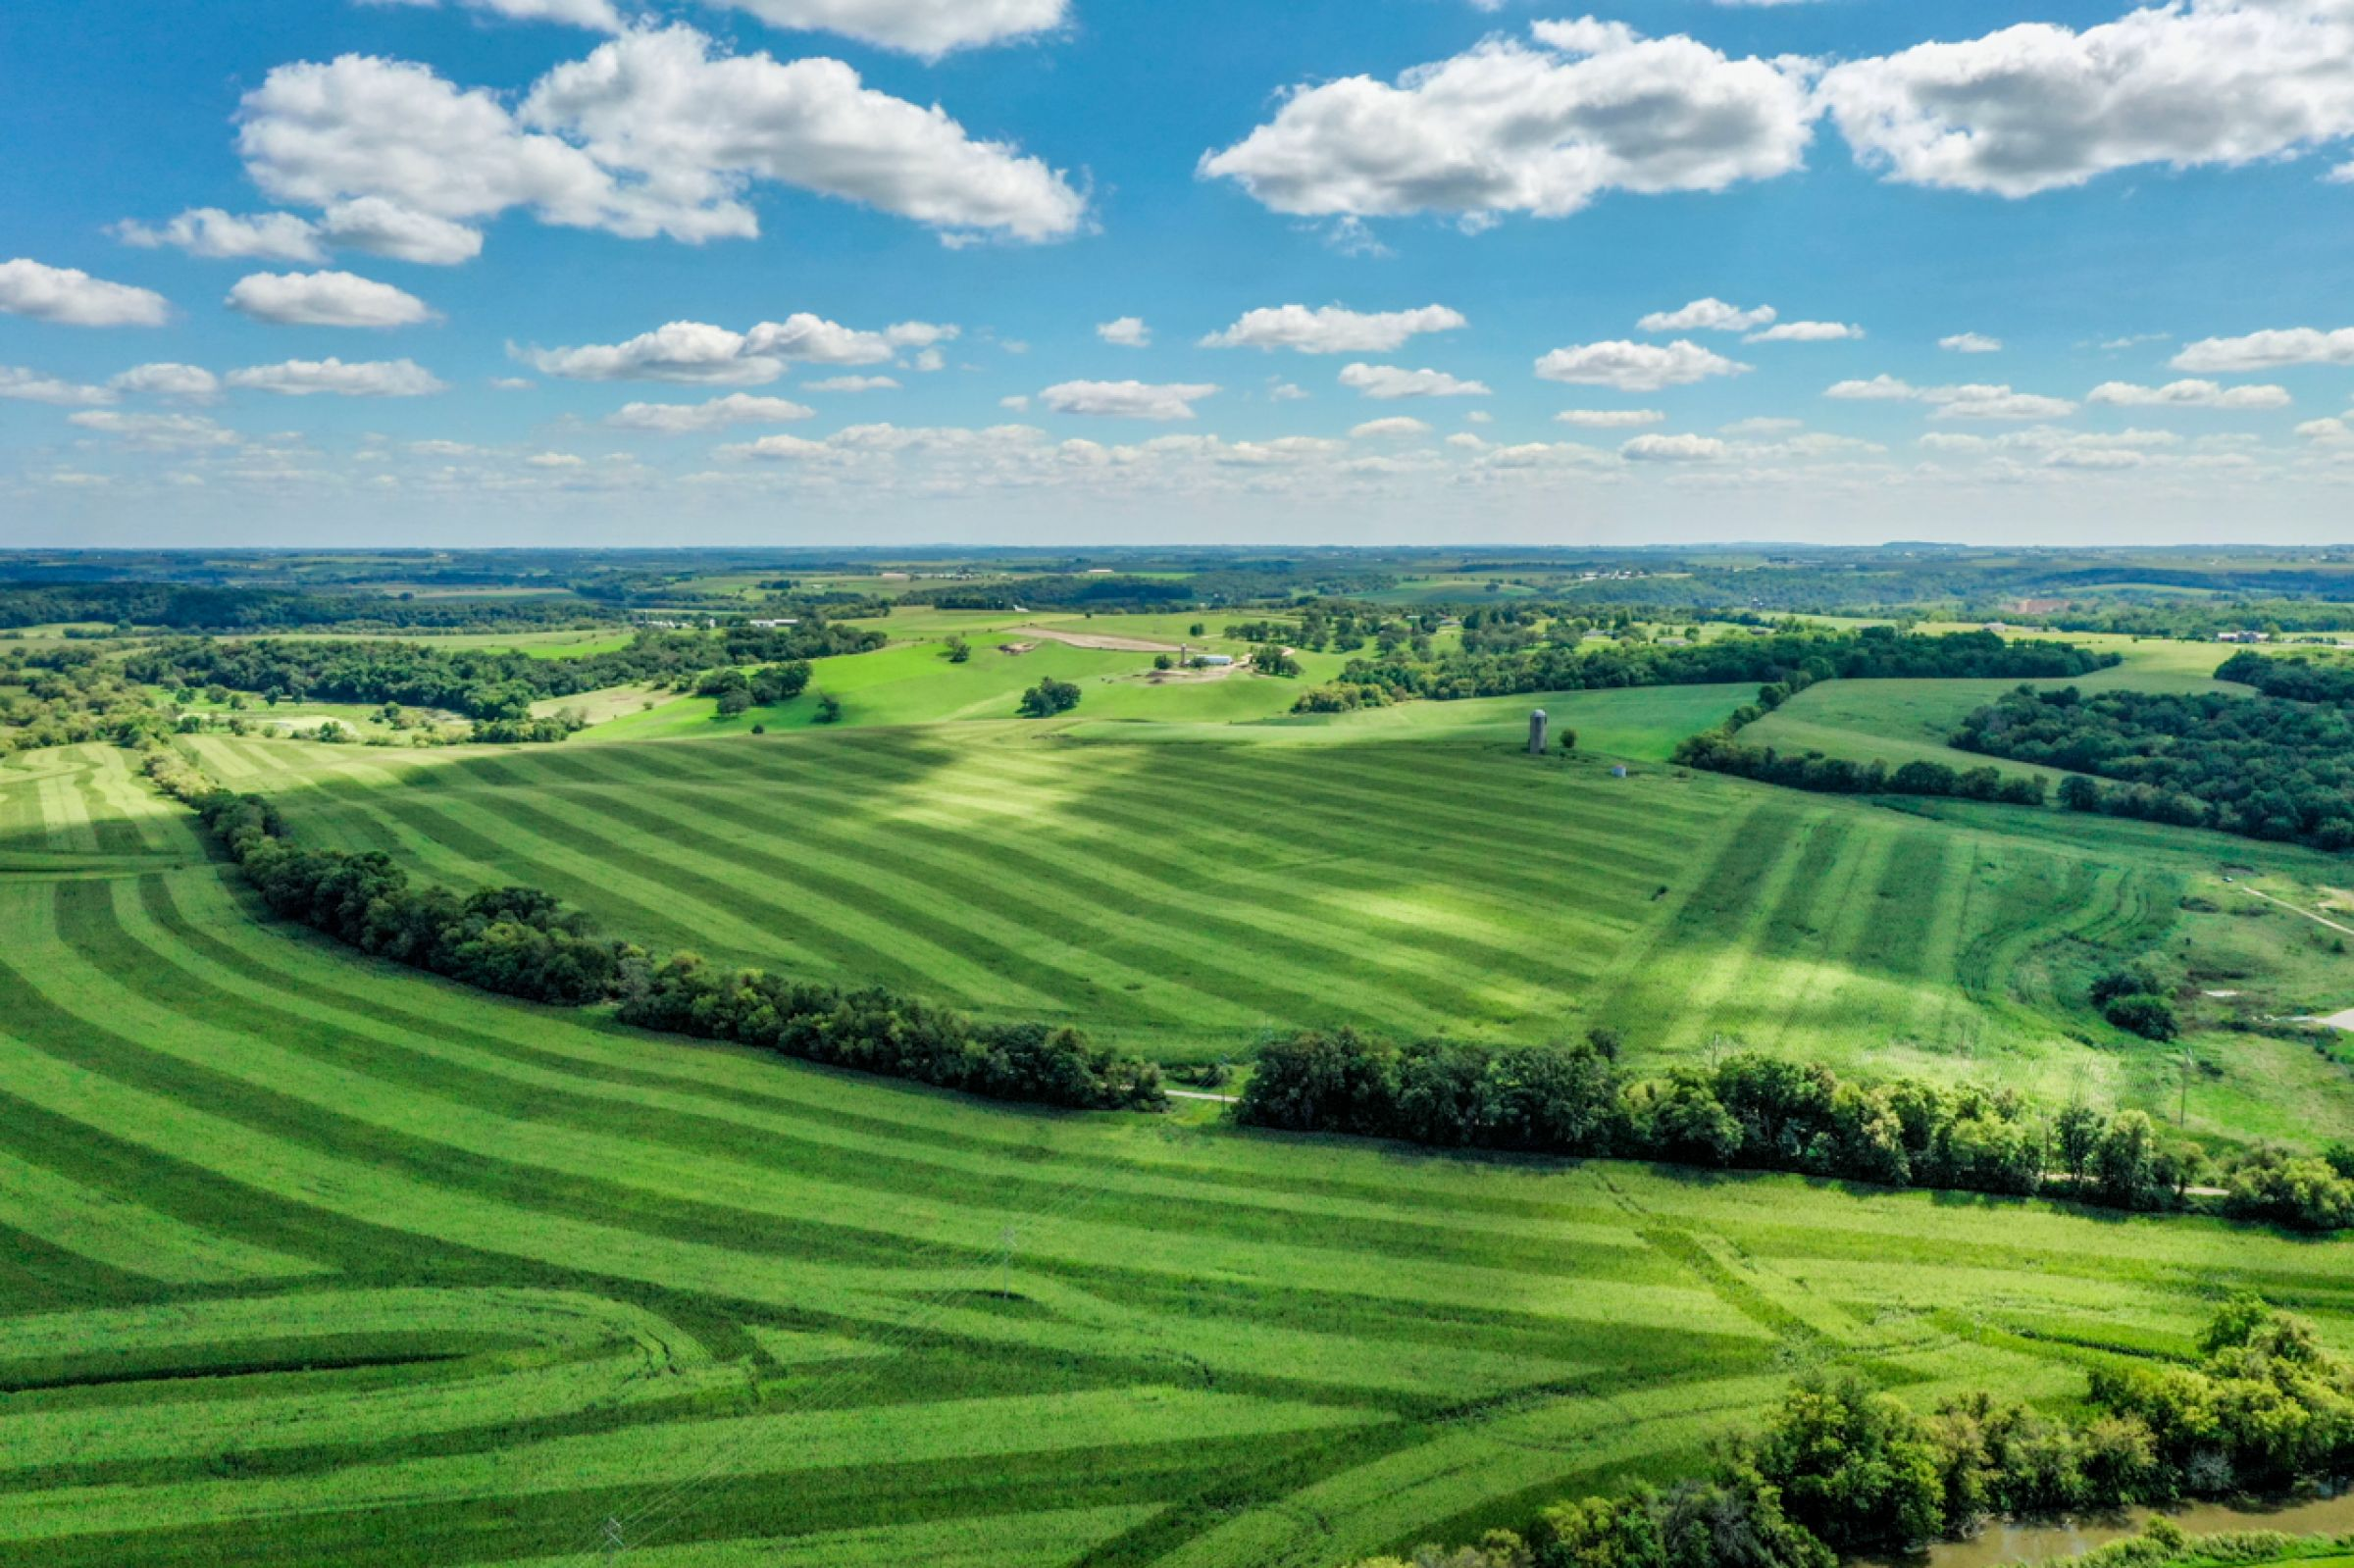 land-lafayette-county-wisconsin-120-acres-listing-number-15729-4-2021-09-03-204840.jpg